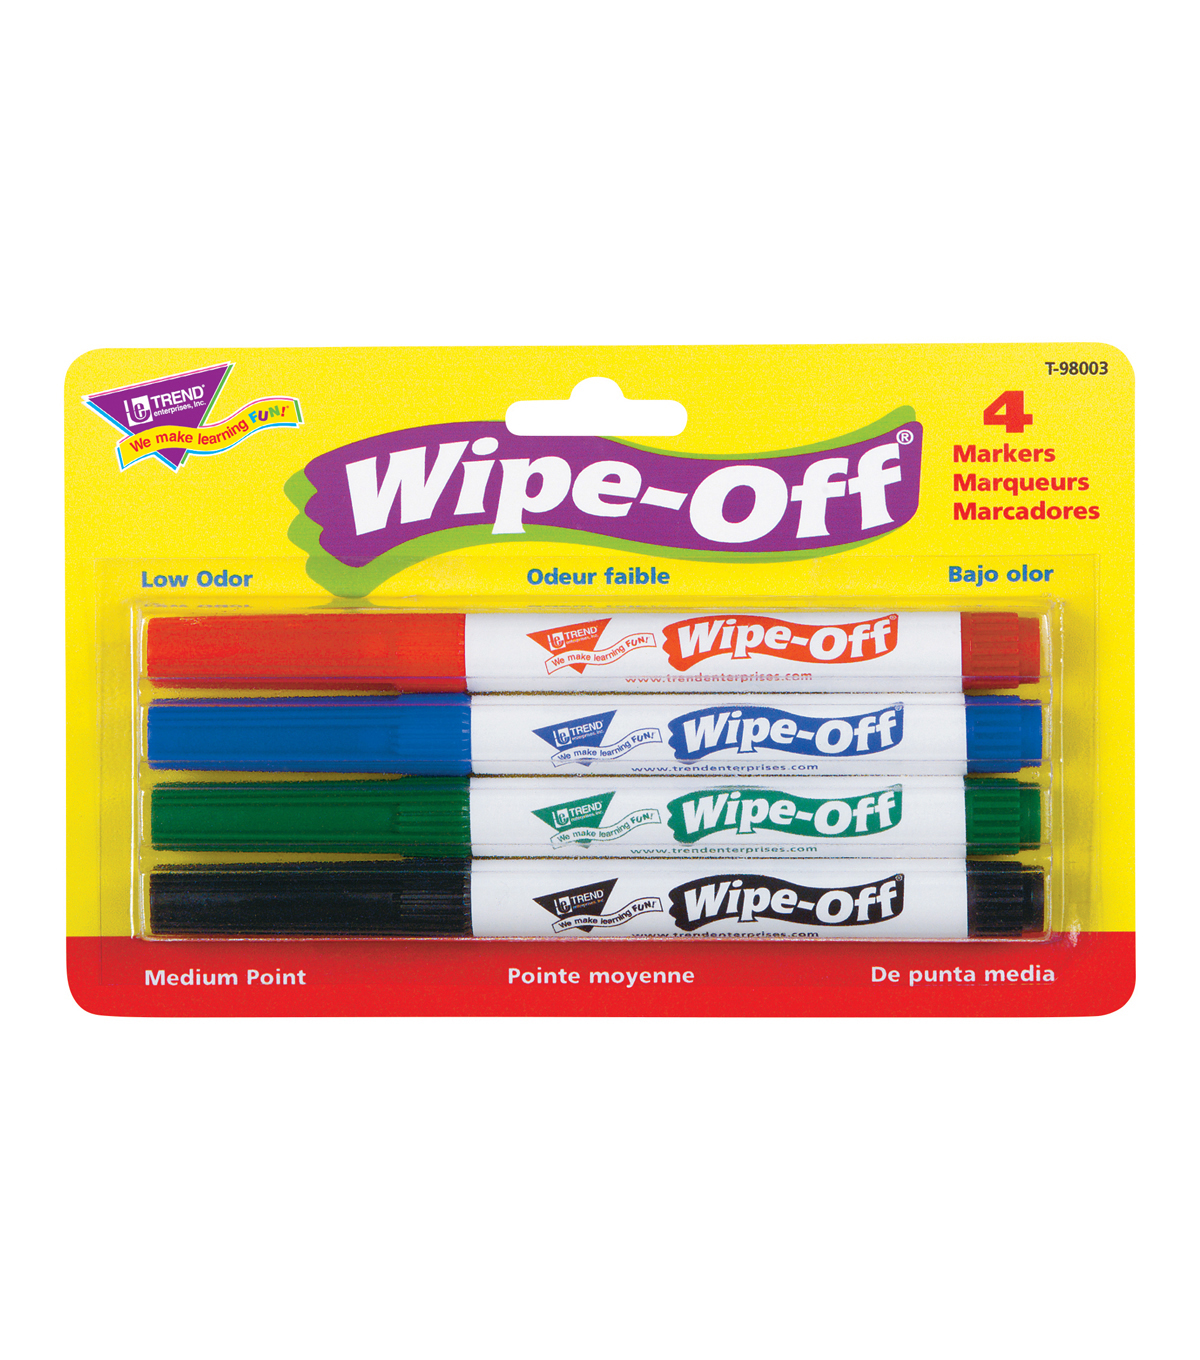 TREND Wipe-Off 24 pk Medium Point Standard Color Markers